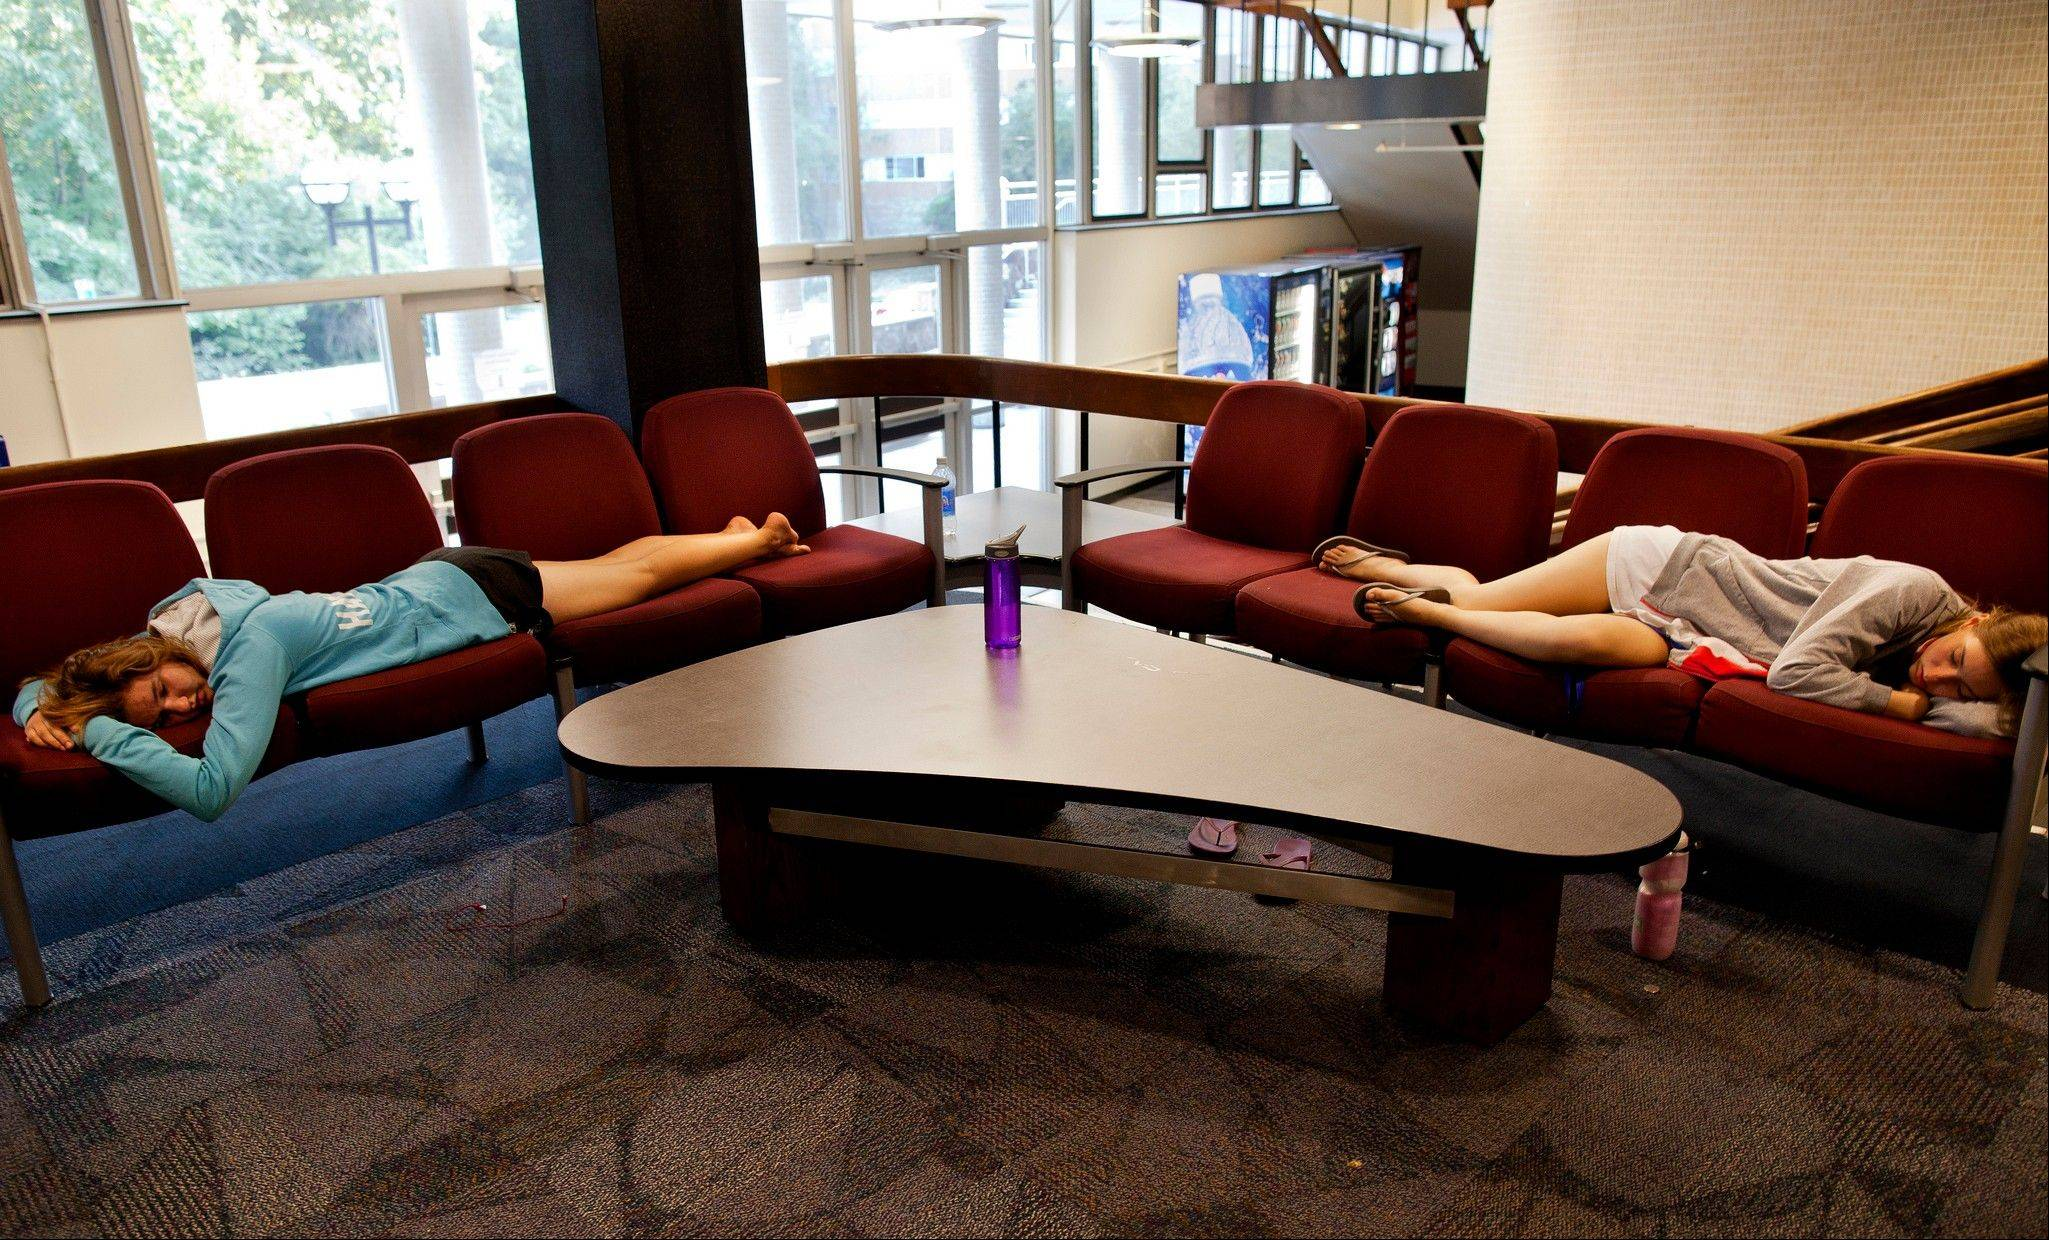 Undergraduate Engineering and Michigan Science, Technology, Engineering and Mathematics (M-STEM) Academy members Noelle Hansford, left, and Andrea Case take a nap in the lobby of Bursley Hall on the campus of the University of Michigan, in Ann Arbor, Mich. As college students return to campus in the coming weeks, they'll be showered in the usual handouts of coupons, condoms, and credit cards. But some schools are also giving students what a growing body of research reveals could make a huge difference in their college careers: ear plugs, sleep shades and napping lessons.